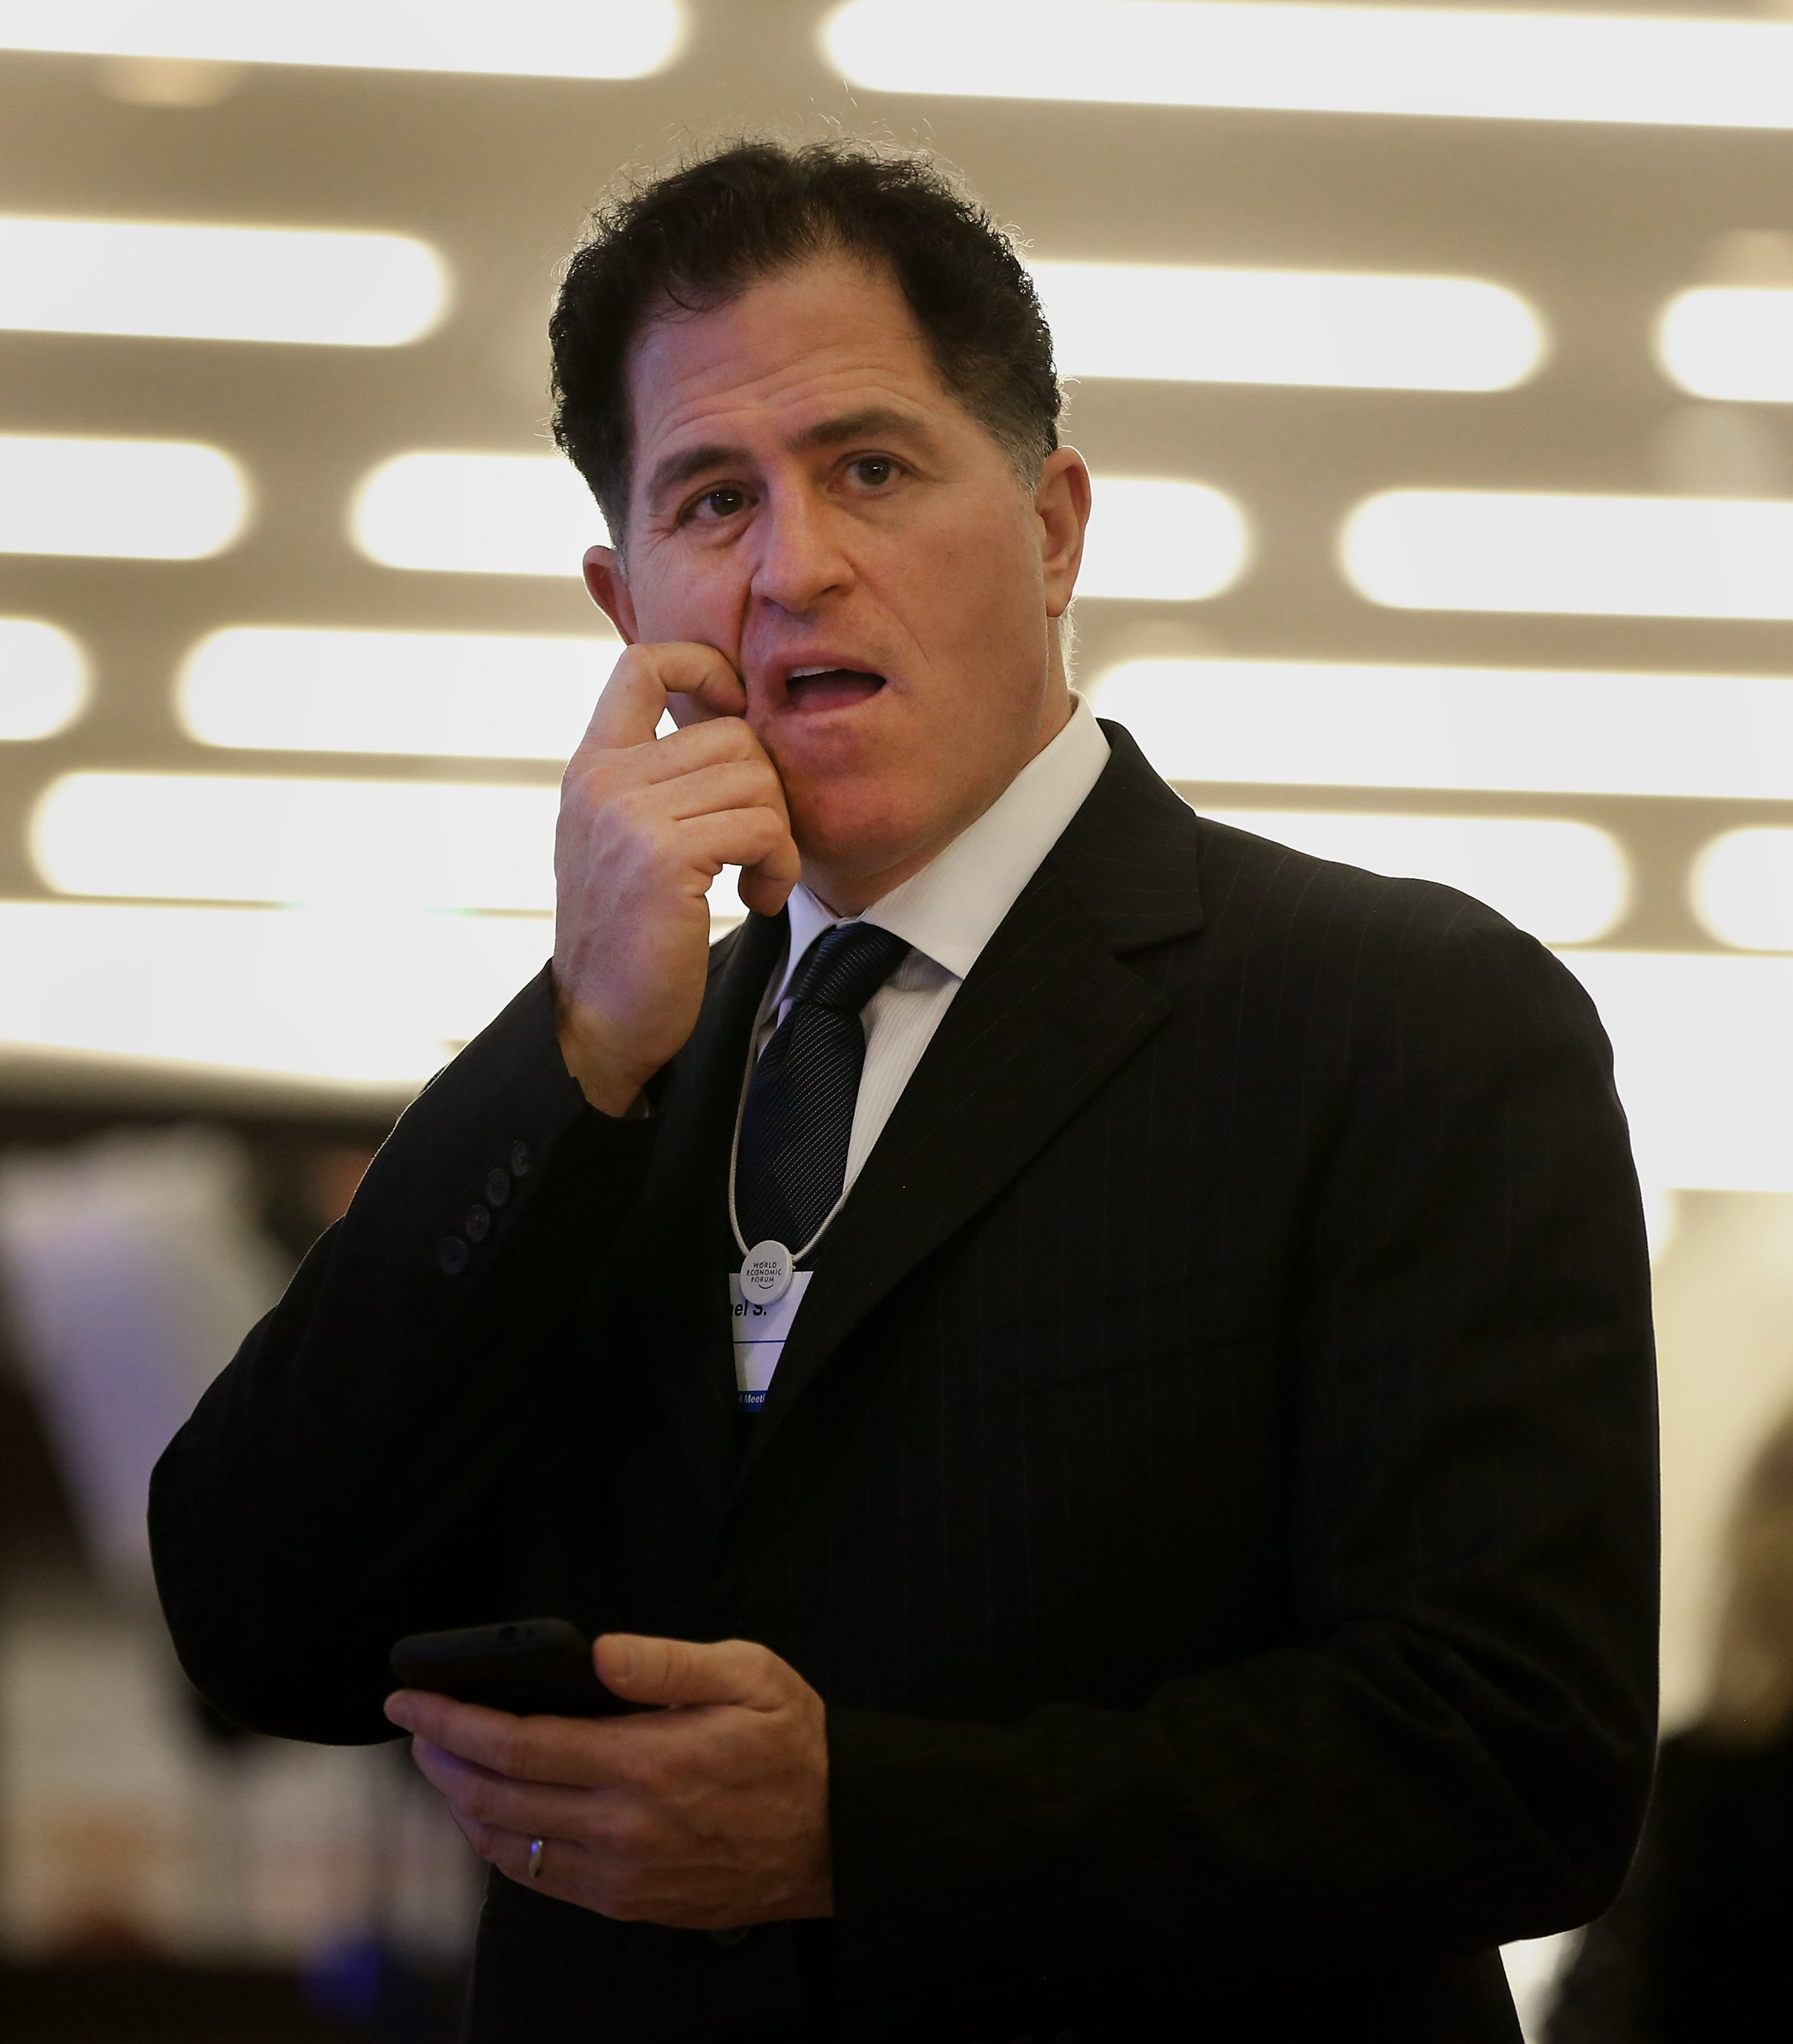 Michael Dell, chairman and chief executive officer of Dell Inc., speaks to fellow delegates in the Congress Center on day three of the World Economic Forum (WEF) in Davos, Switzerland, on Friday, Jan. 25, 2013.